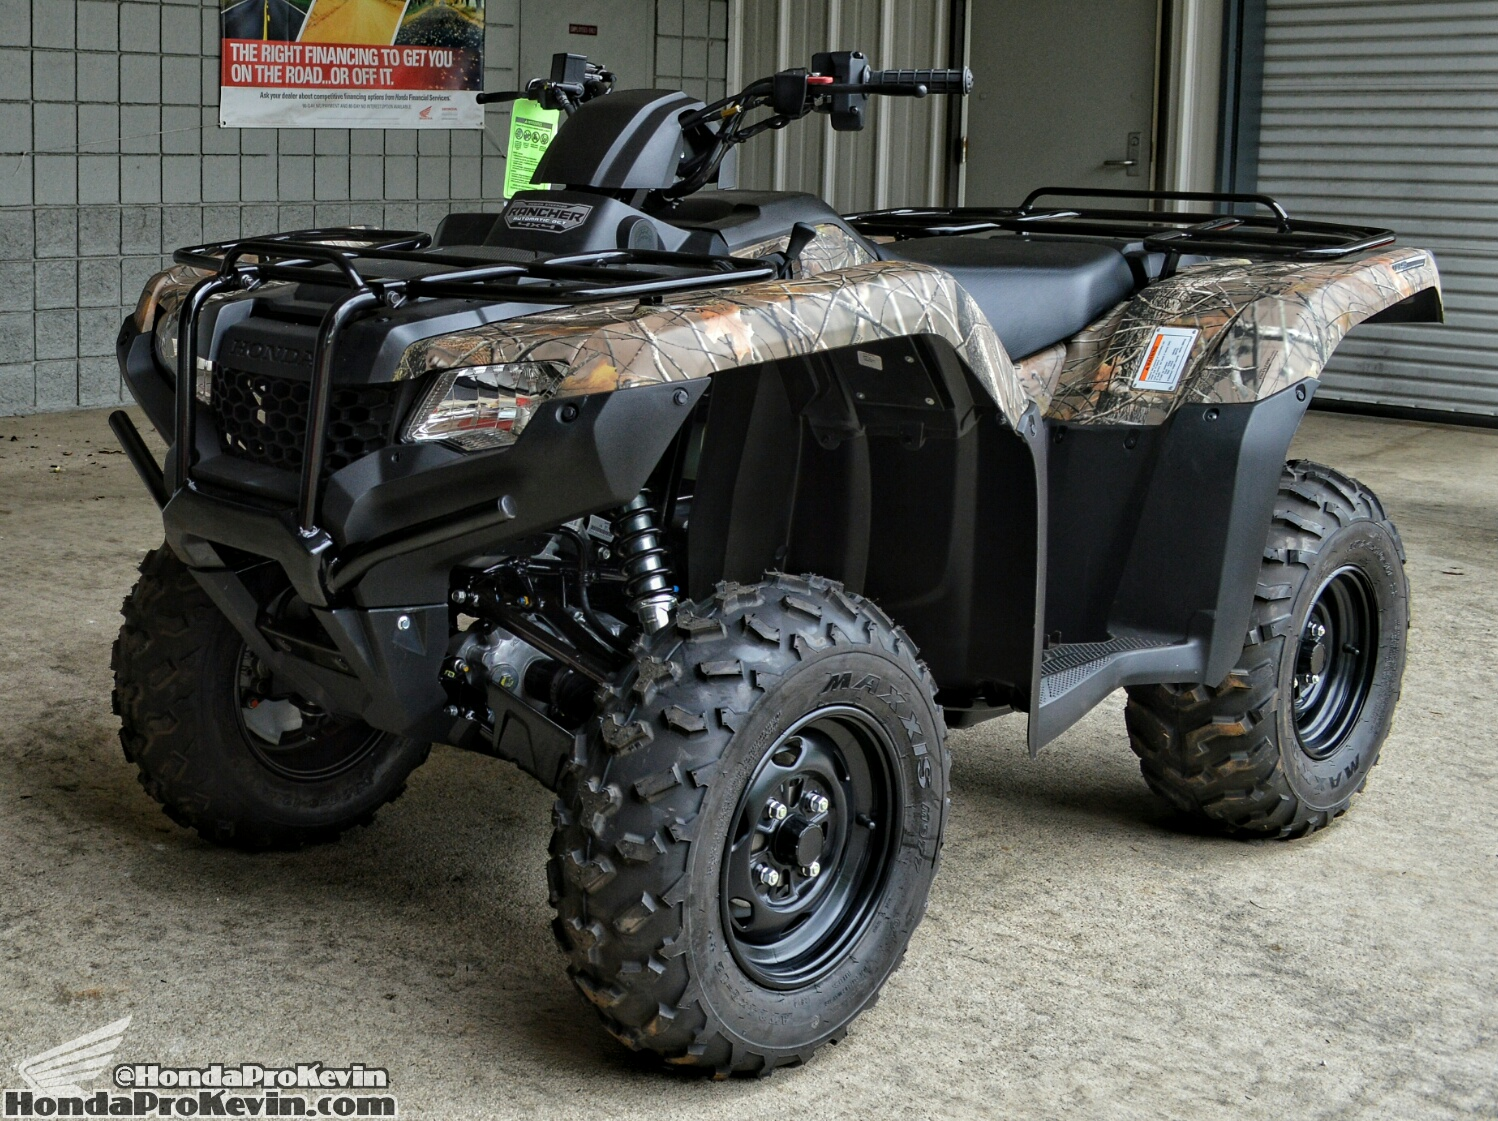 2016 Honda Rancher 420 ATV Review / Specs   4x4 Four Wheeler TRX420